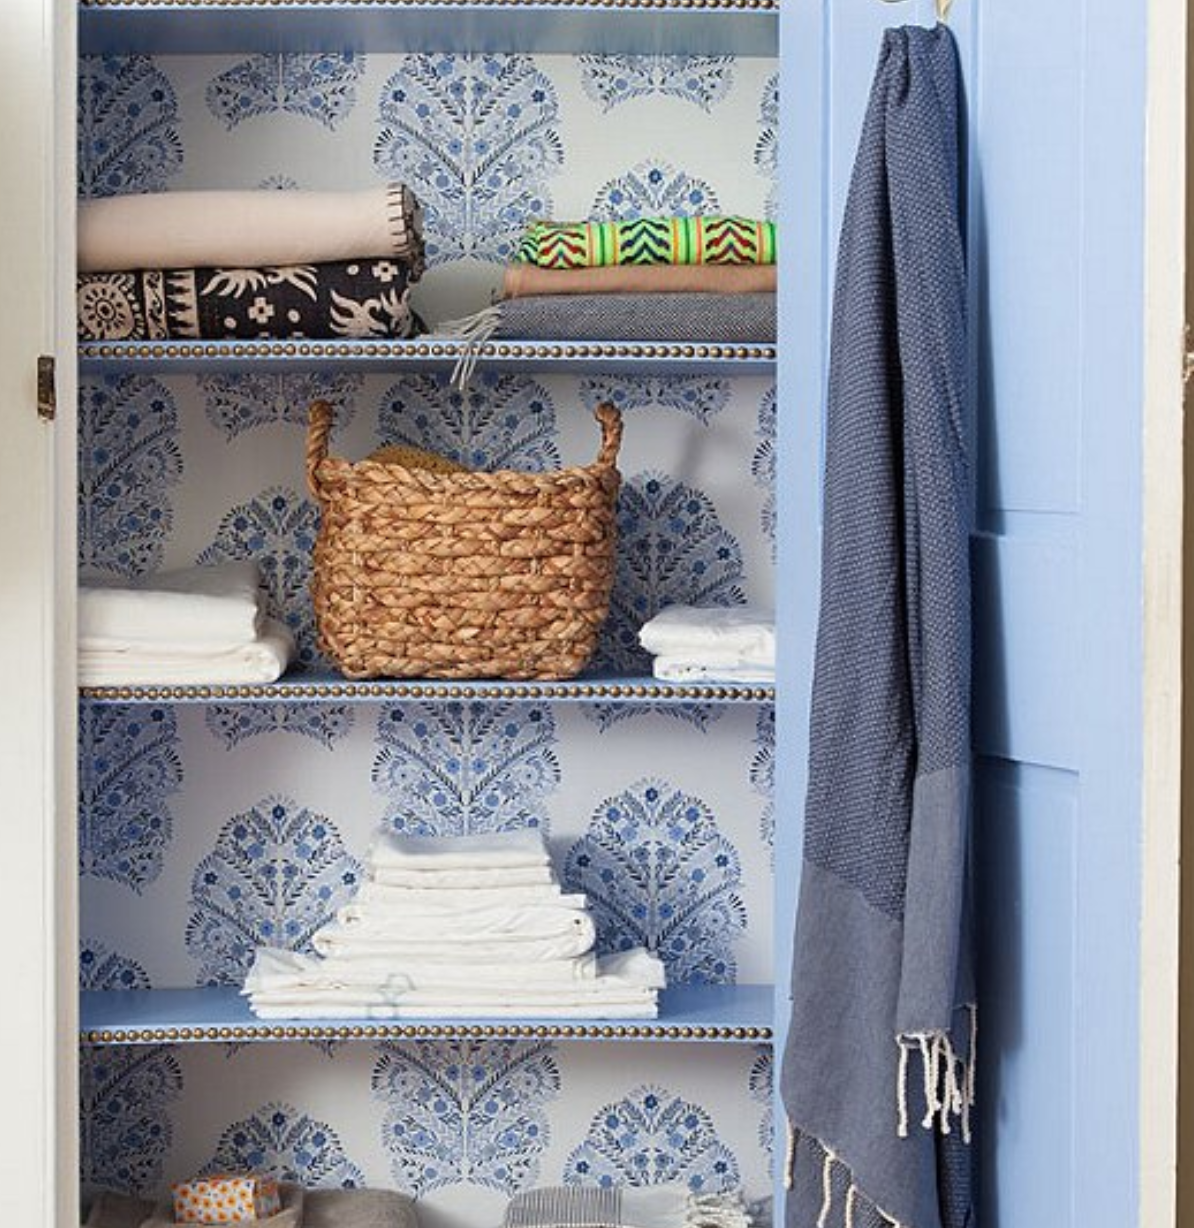 Wallpapered linen closet with embellished shelves at   One Kings Lane